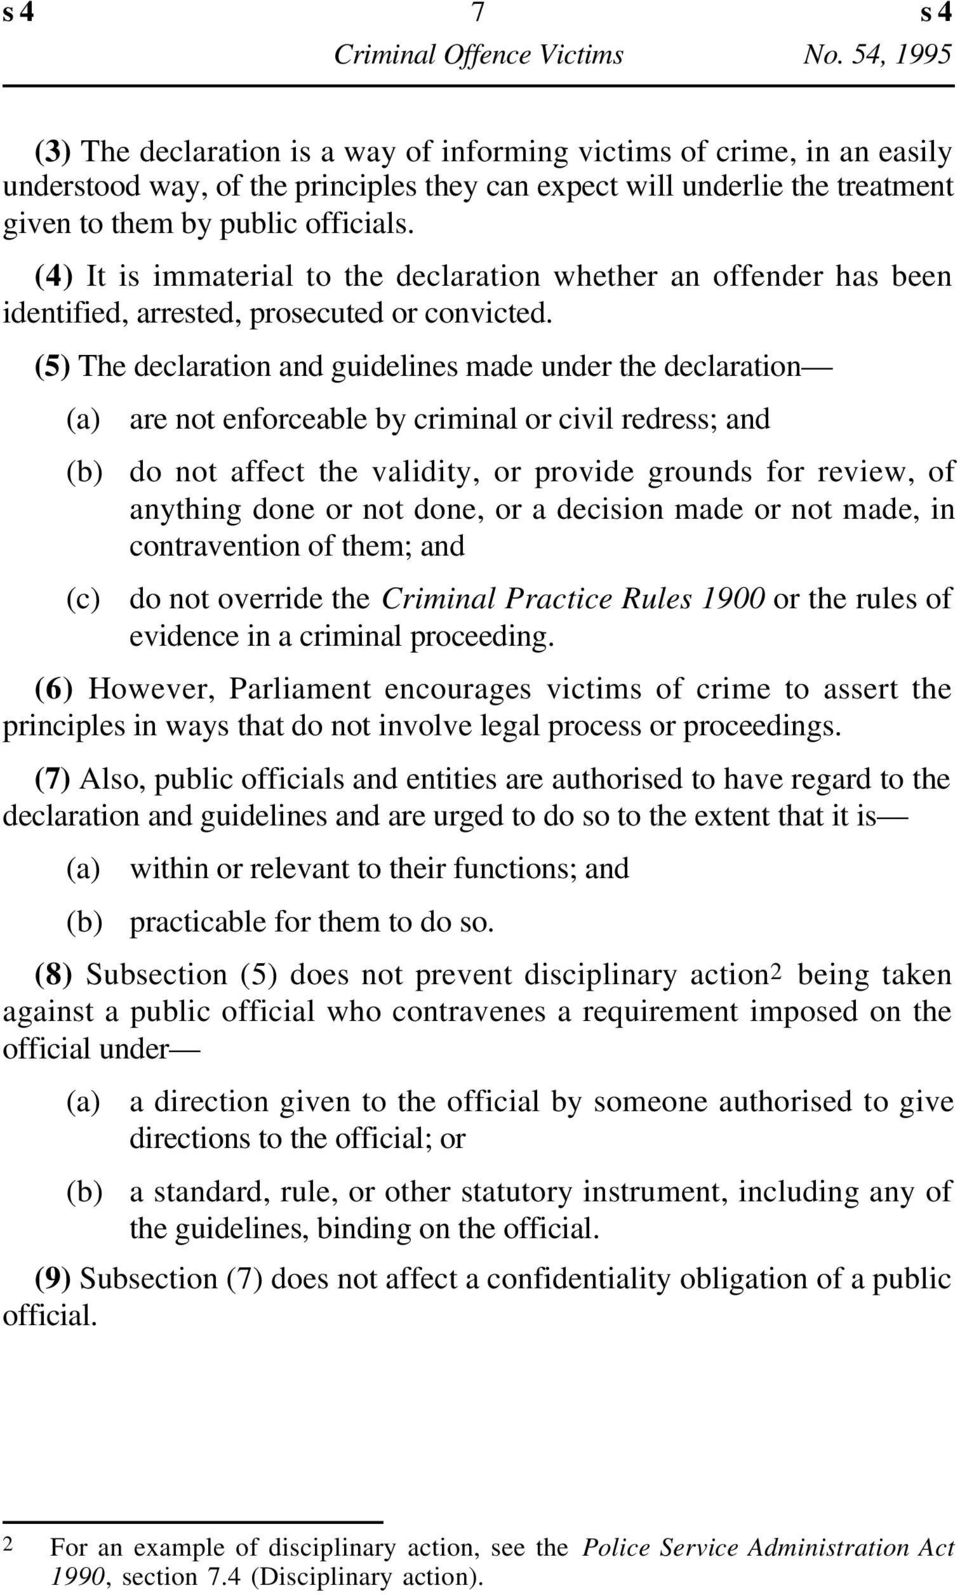 (5) The declaration and guidelines made under the declaration (c) are not enforceable by criminal or civil redress; and do not affect the validity, or provide grounds for review, of anything done or